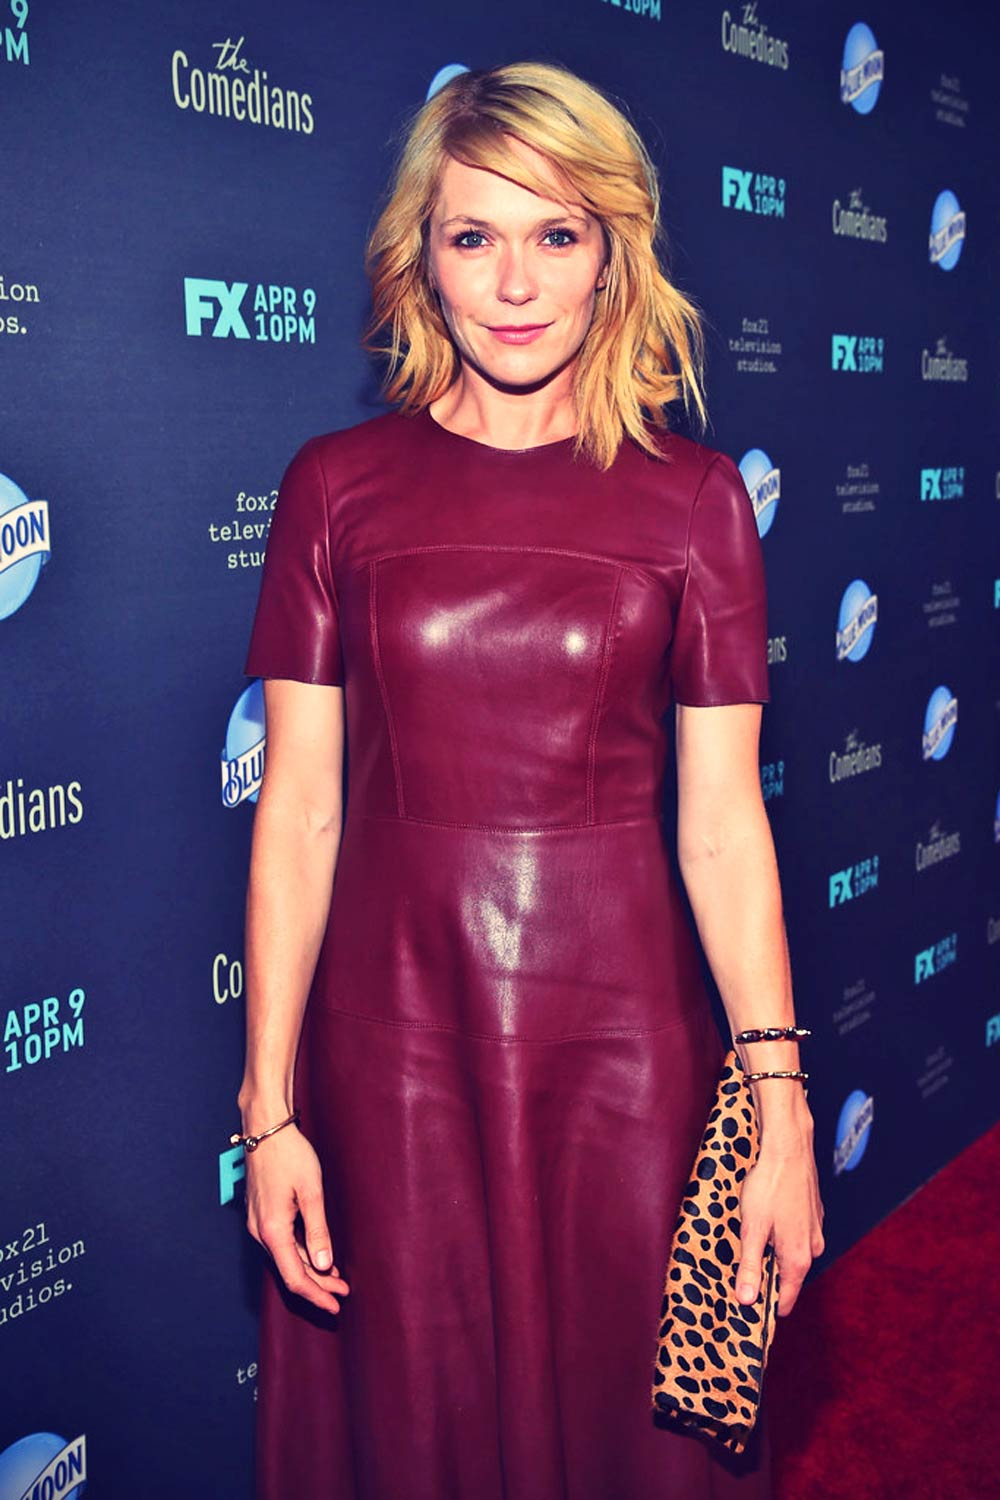 Katie aselton attends the premiere of the comedians leather